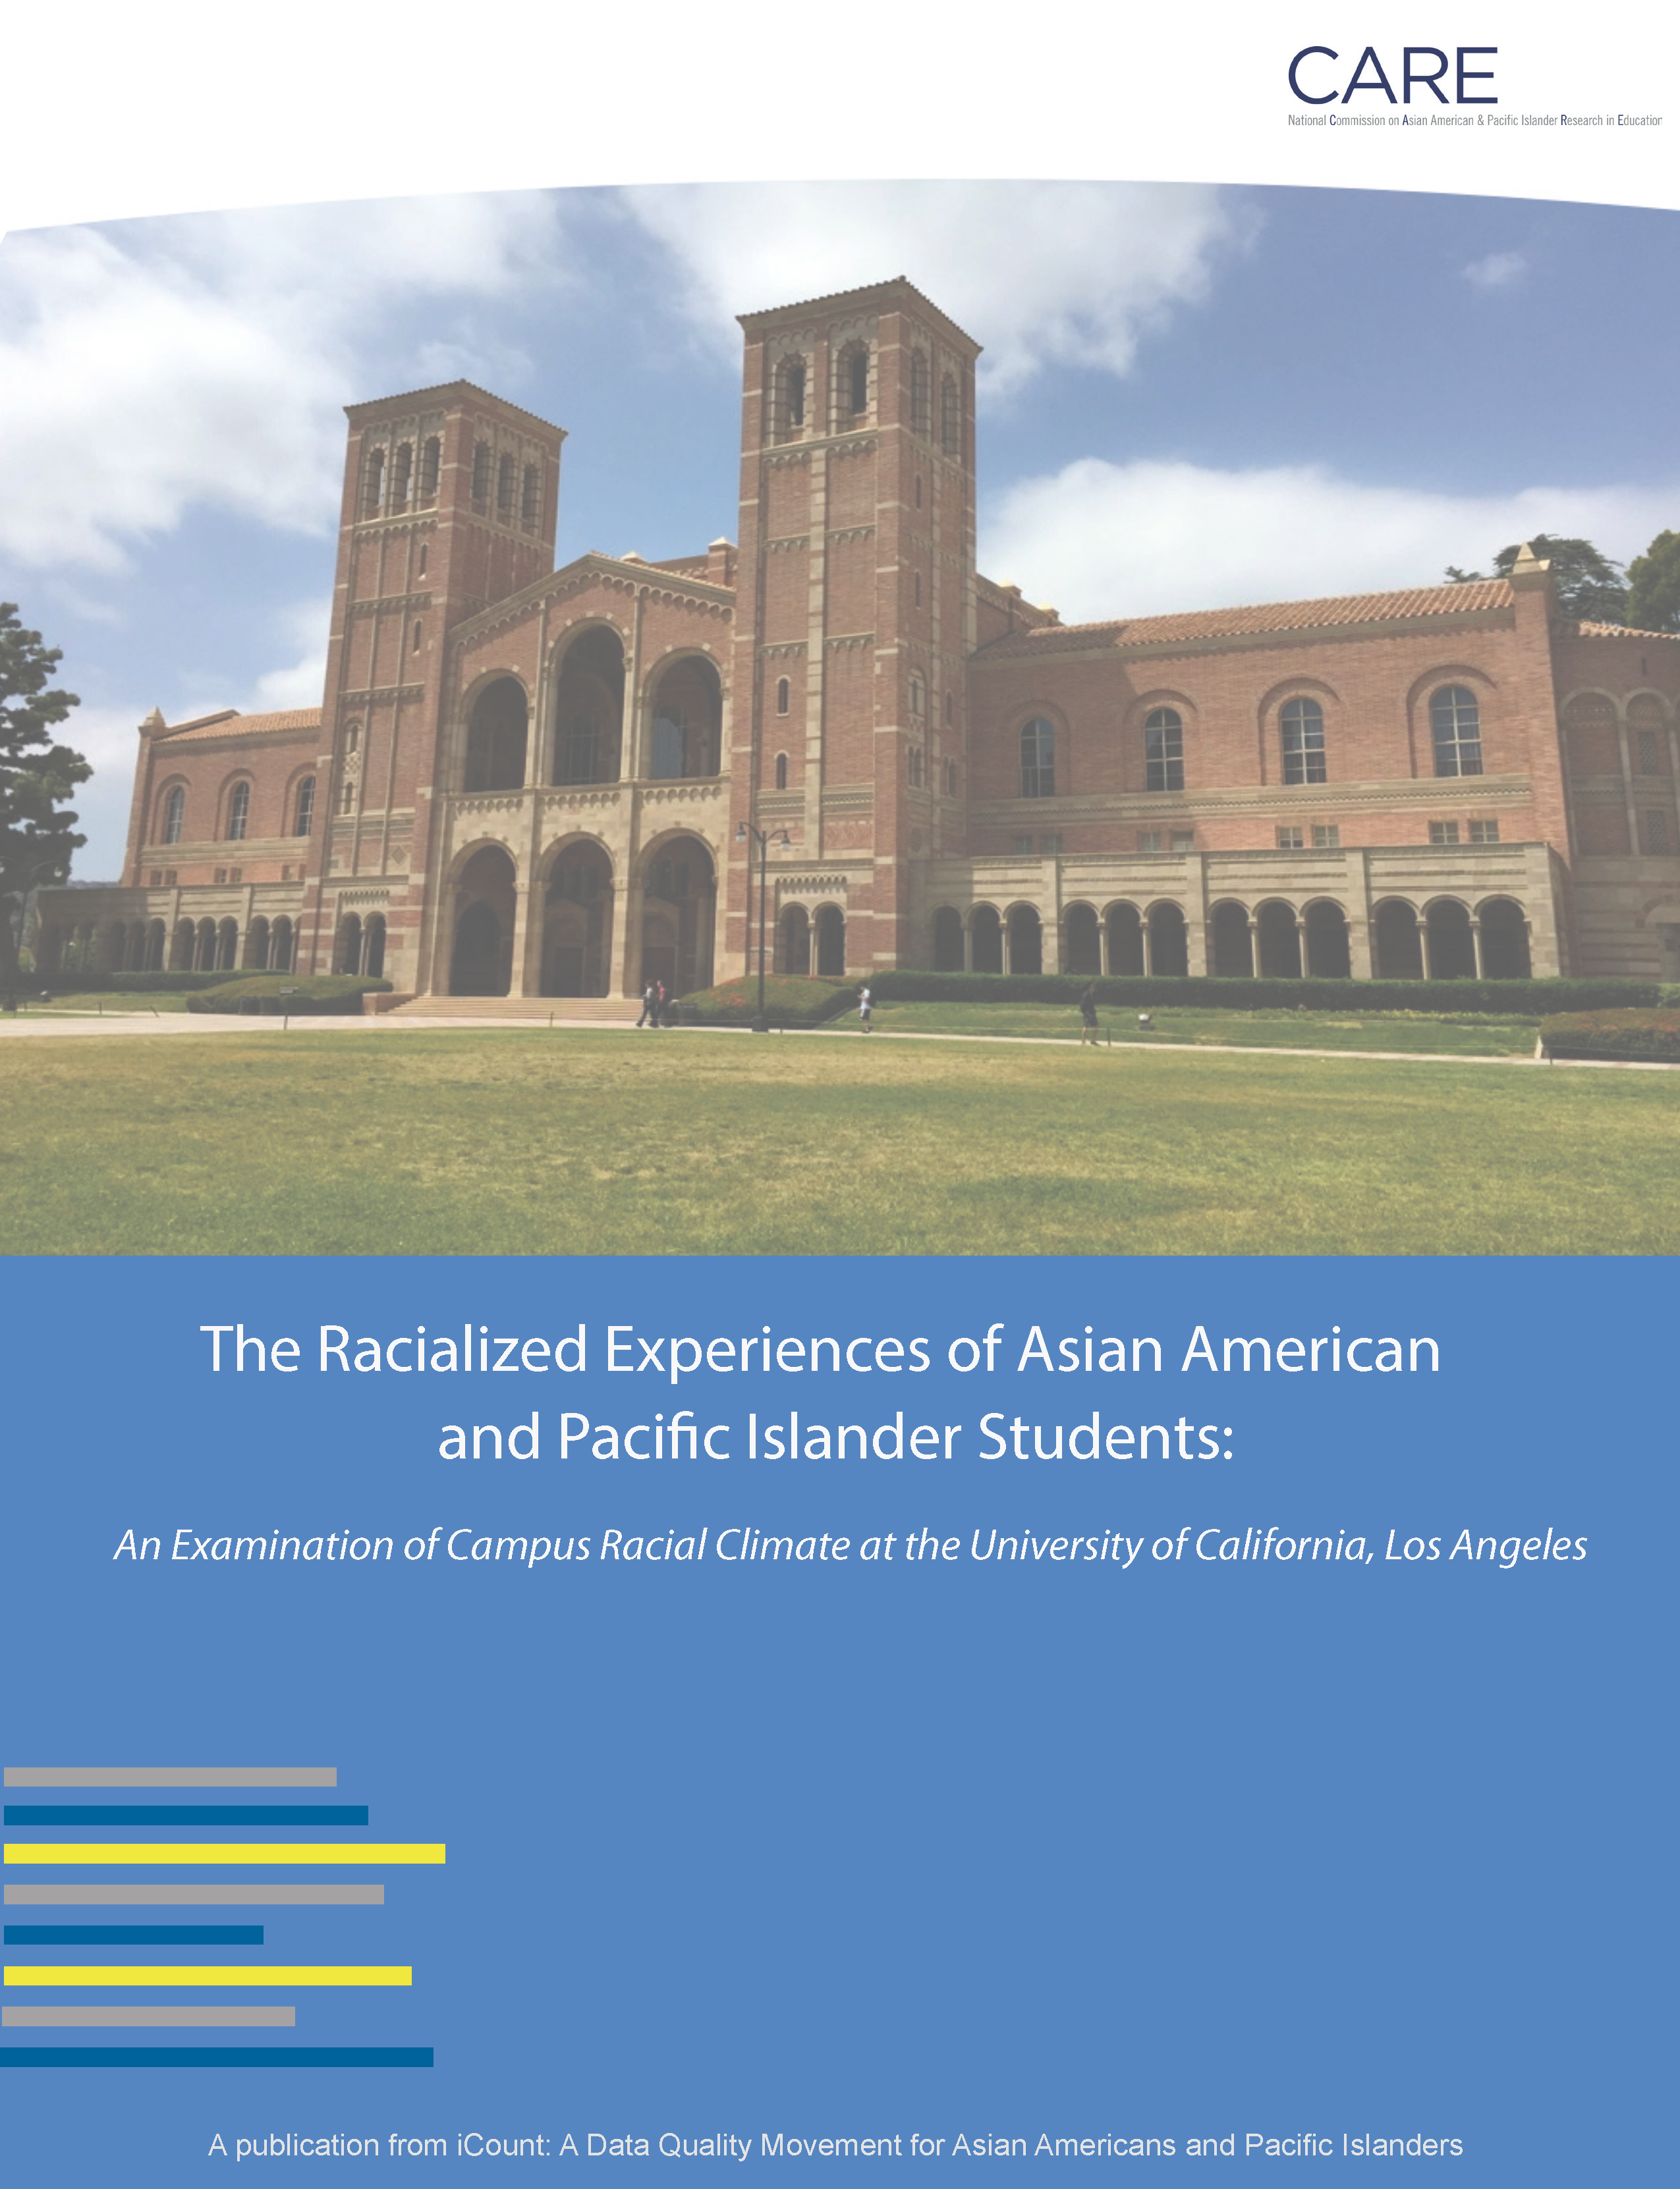 Where can i find more info for UCLA college report?